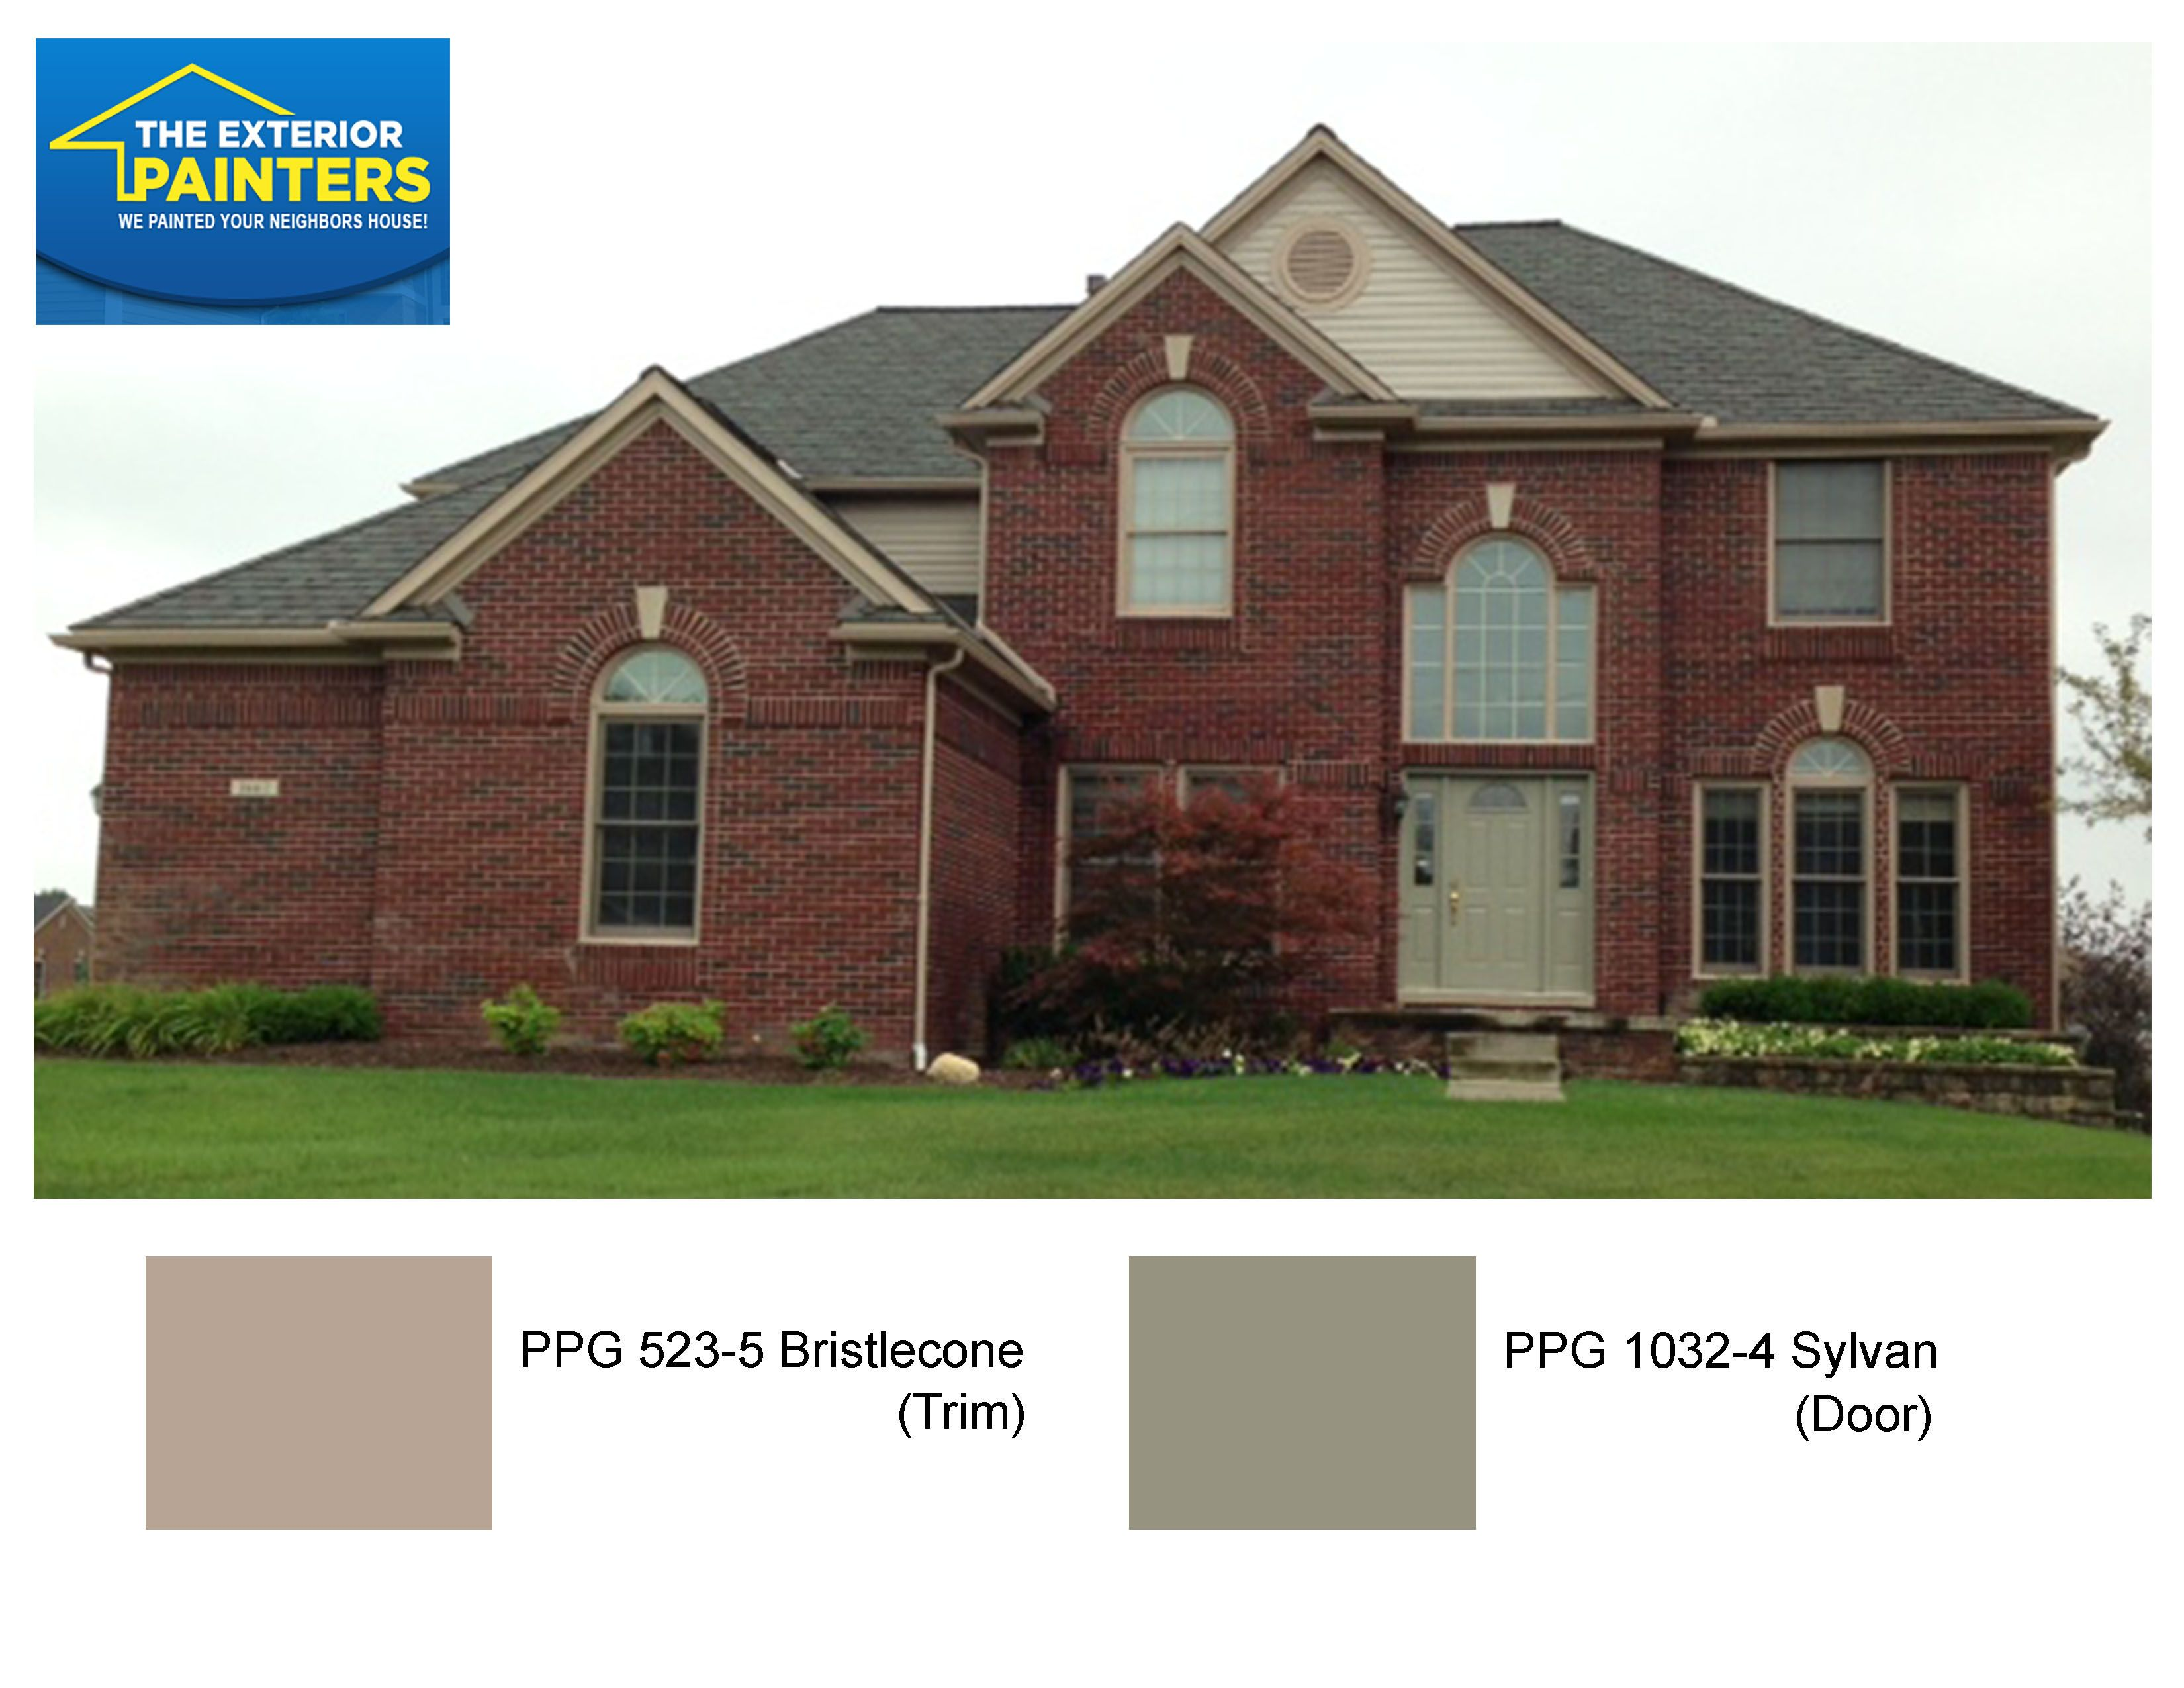 PPG 523-5 Bristlecone with PPG 1032-4 Sylvan for the front door.  sc 1 st  Pinterest & PPG 523-5 Bristlecone with PPG 1032-4 Sylvan for the front door ...